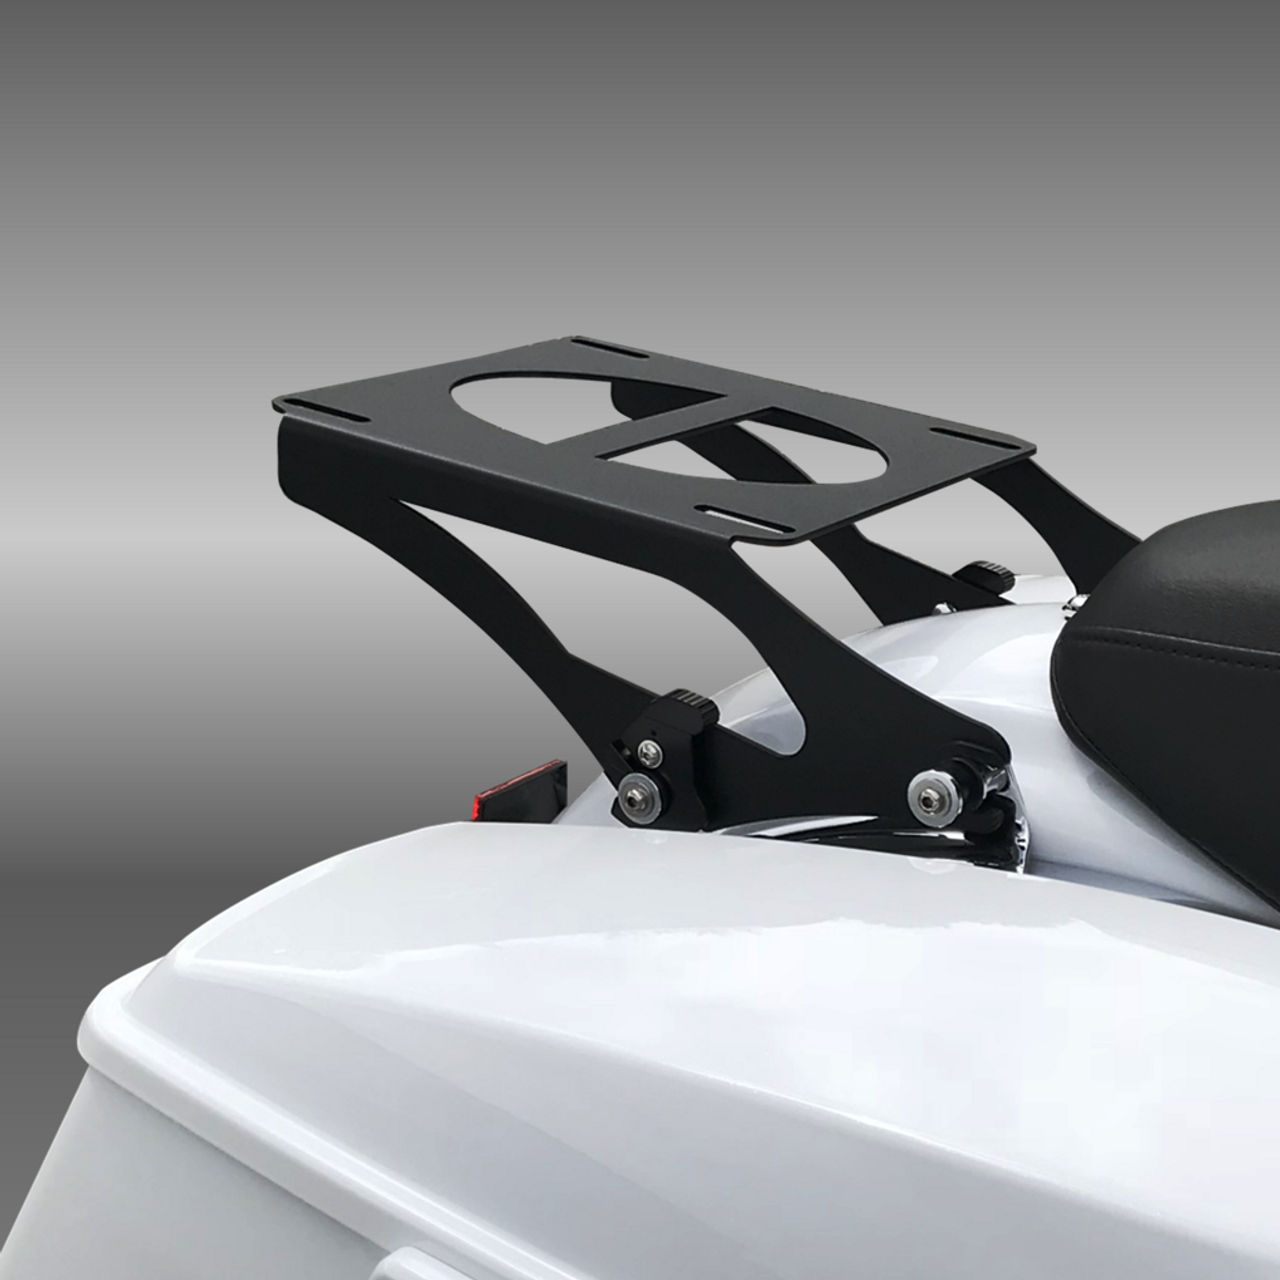 Black Tour Pack Rack:  Fits 2009+ Harley Touring bikes with 4-point docking station